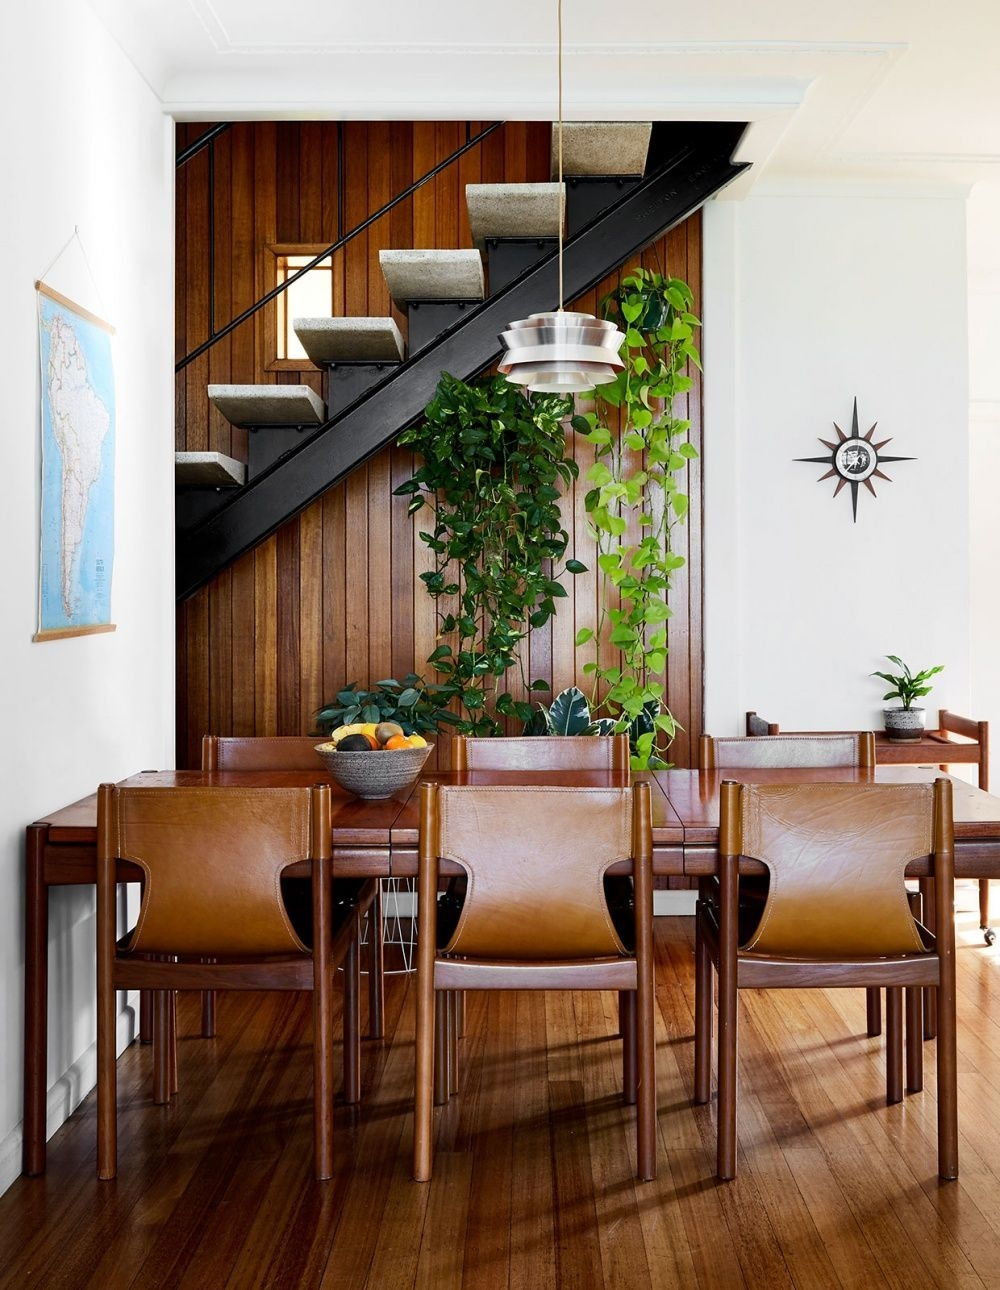 Inspiring Mid Century Furniture Ideas To Try38